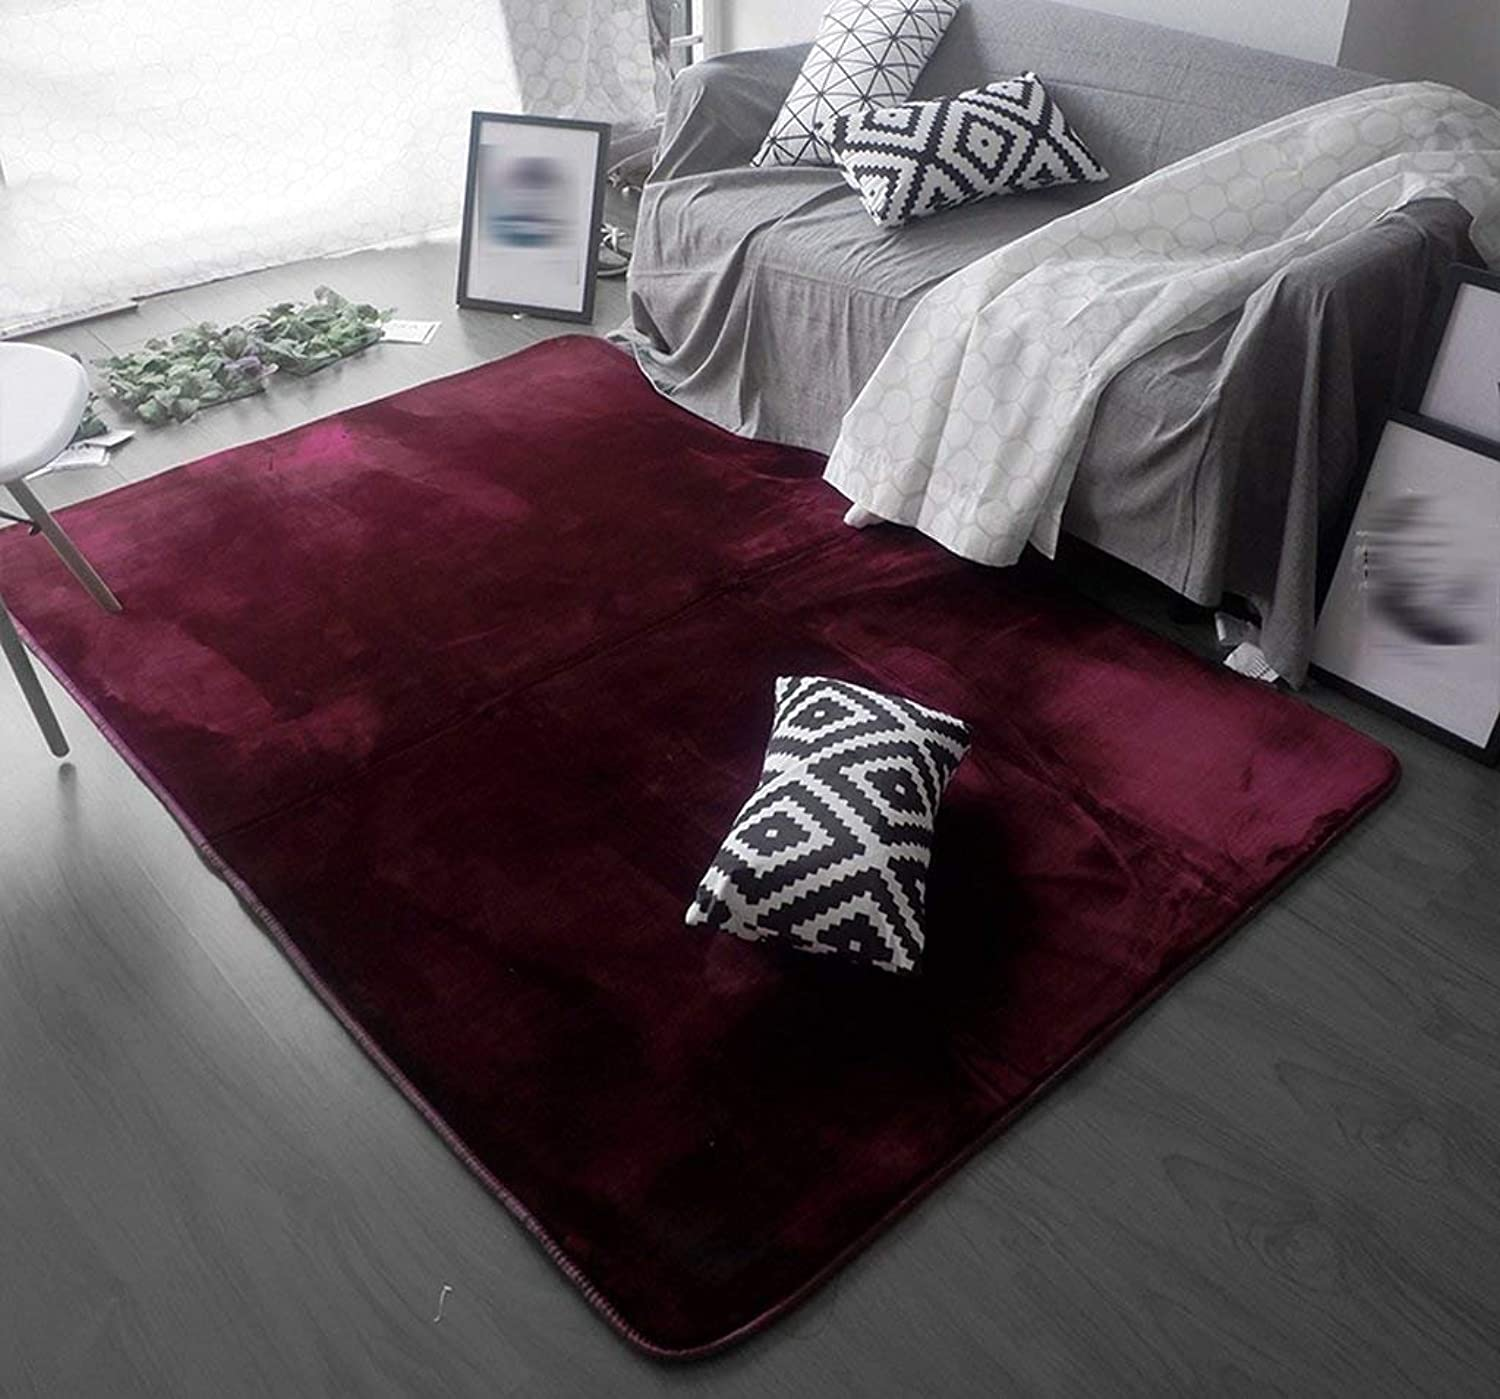 Carpet, Nordic Creative Trend Carpet Living Room Modern Bedroom Carpet Black and White 0.7 × 2.0m 1.4 × 2.0m Soft and Comfortable (color    1, Size   1.0  1.4m)